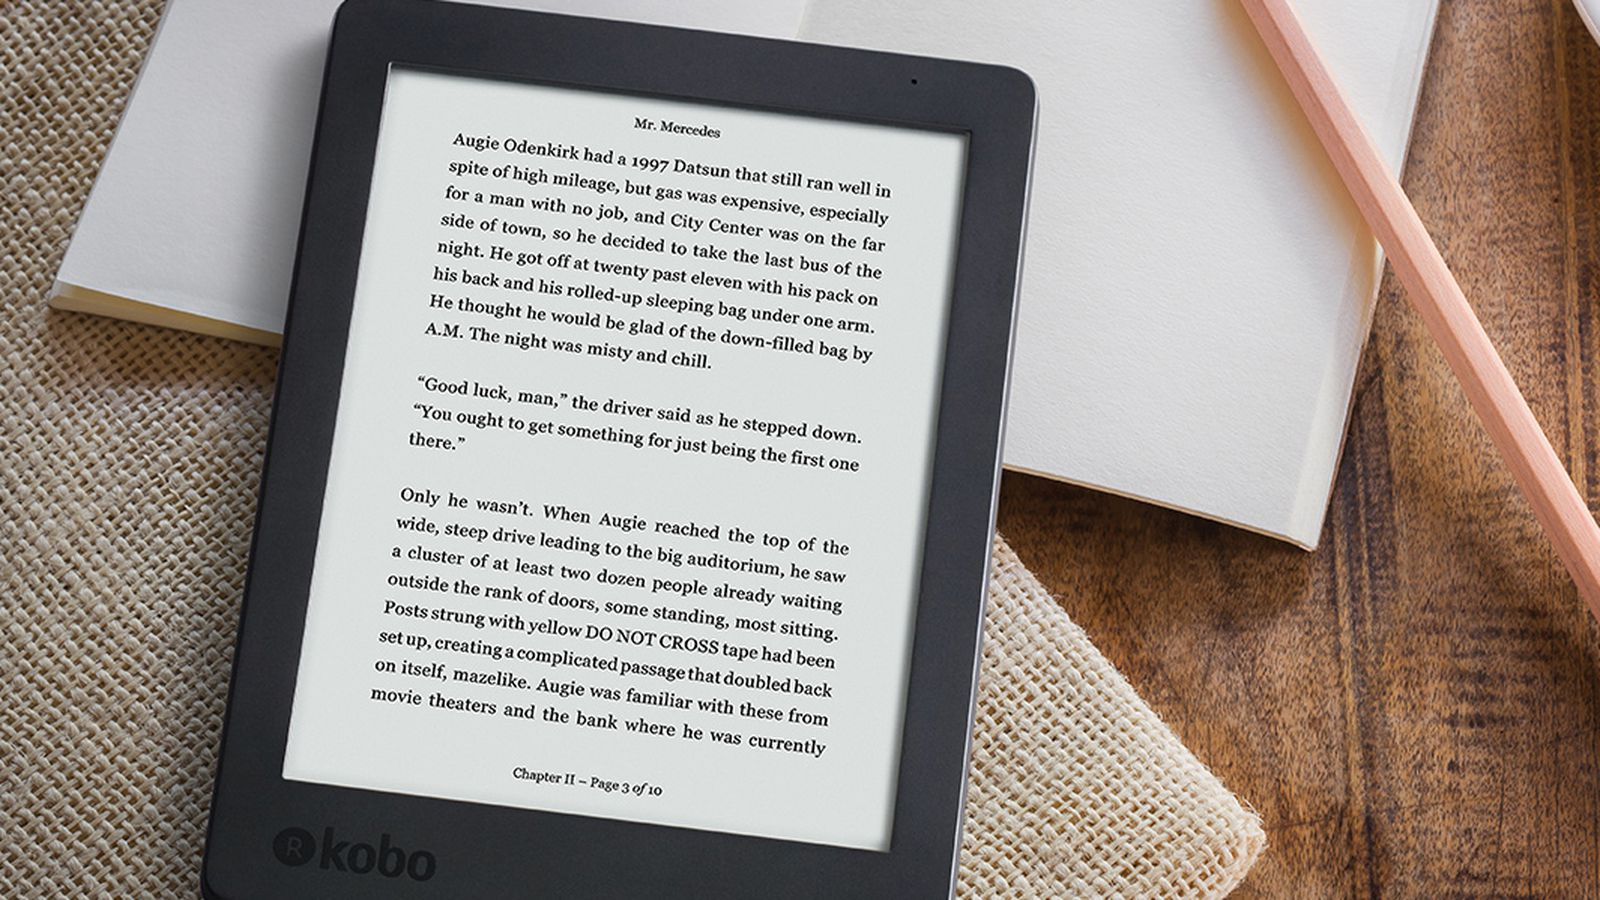 Kobo is releasing an updated version of its 6-inch Aura e